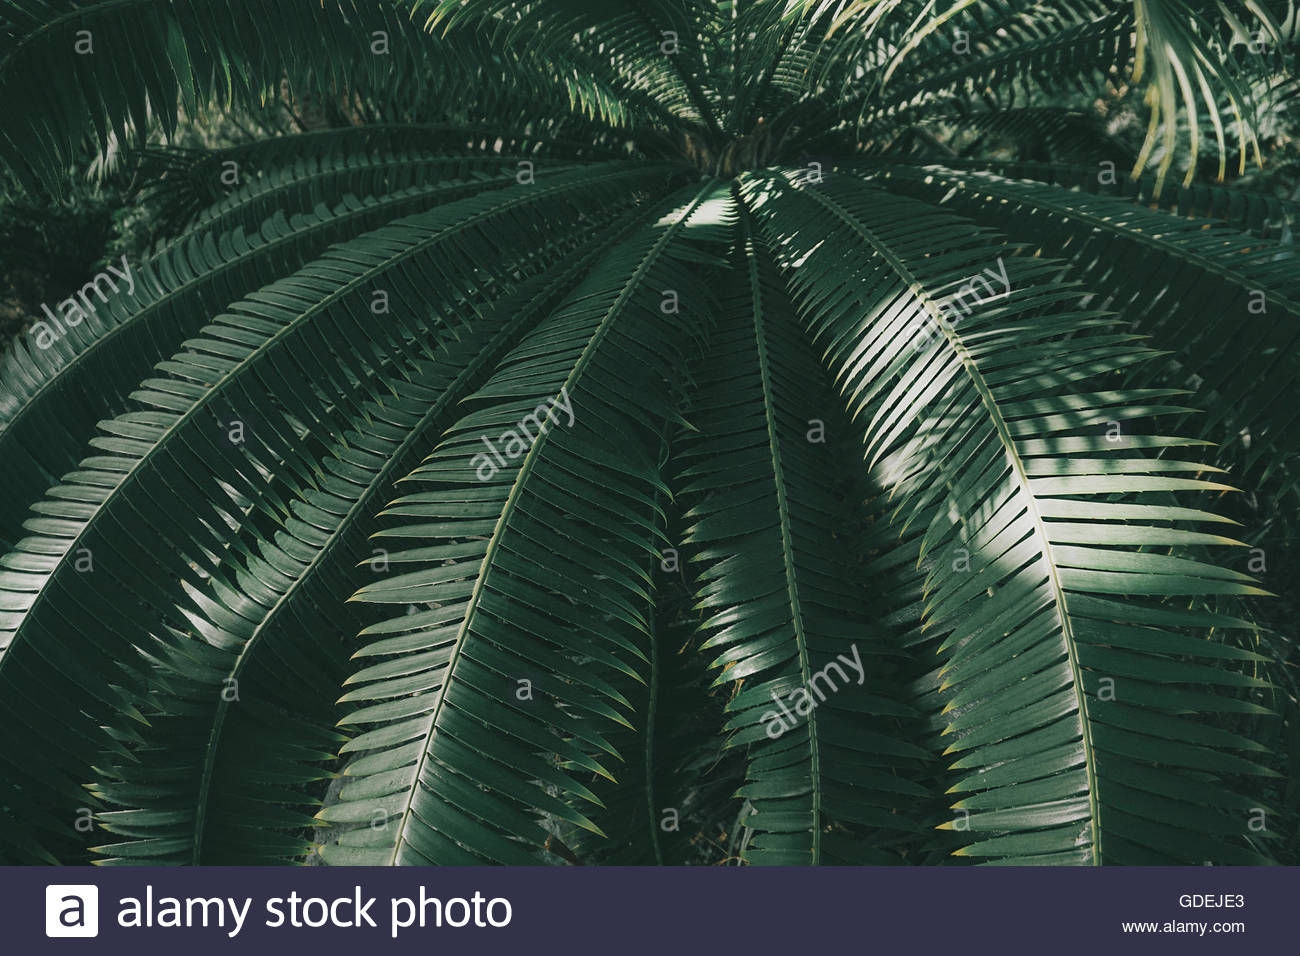 Low angle view of palm tree Photo Stock